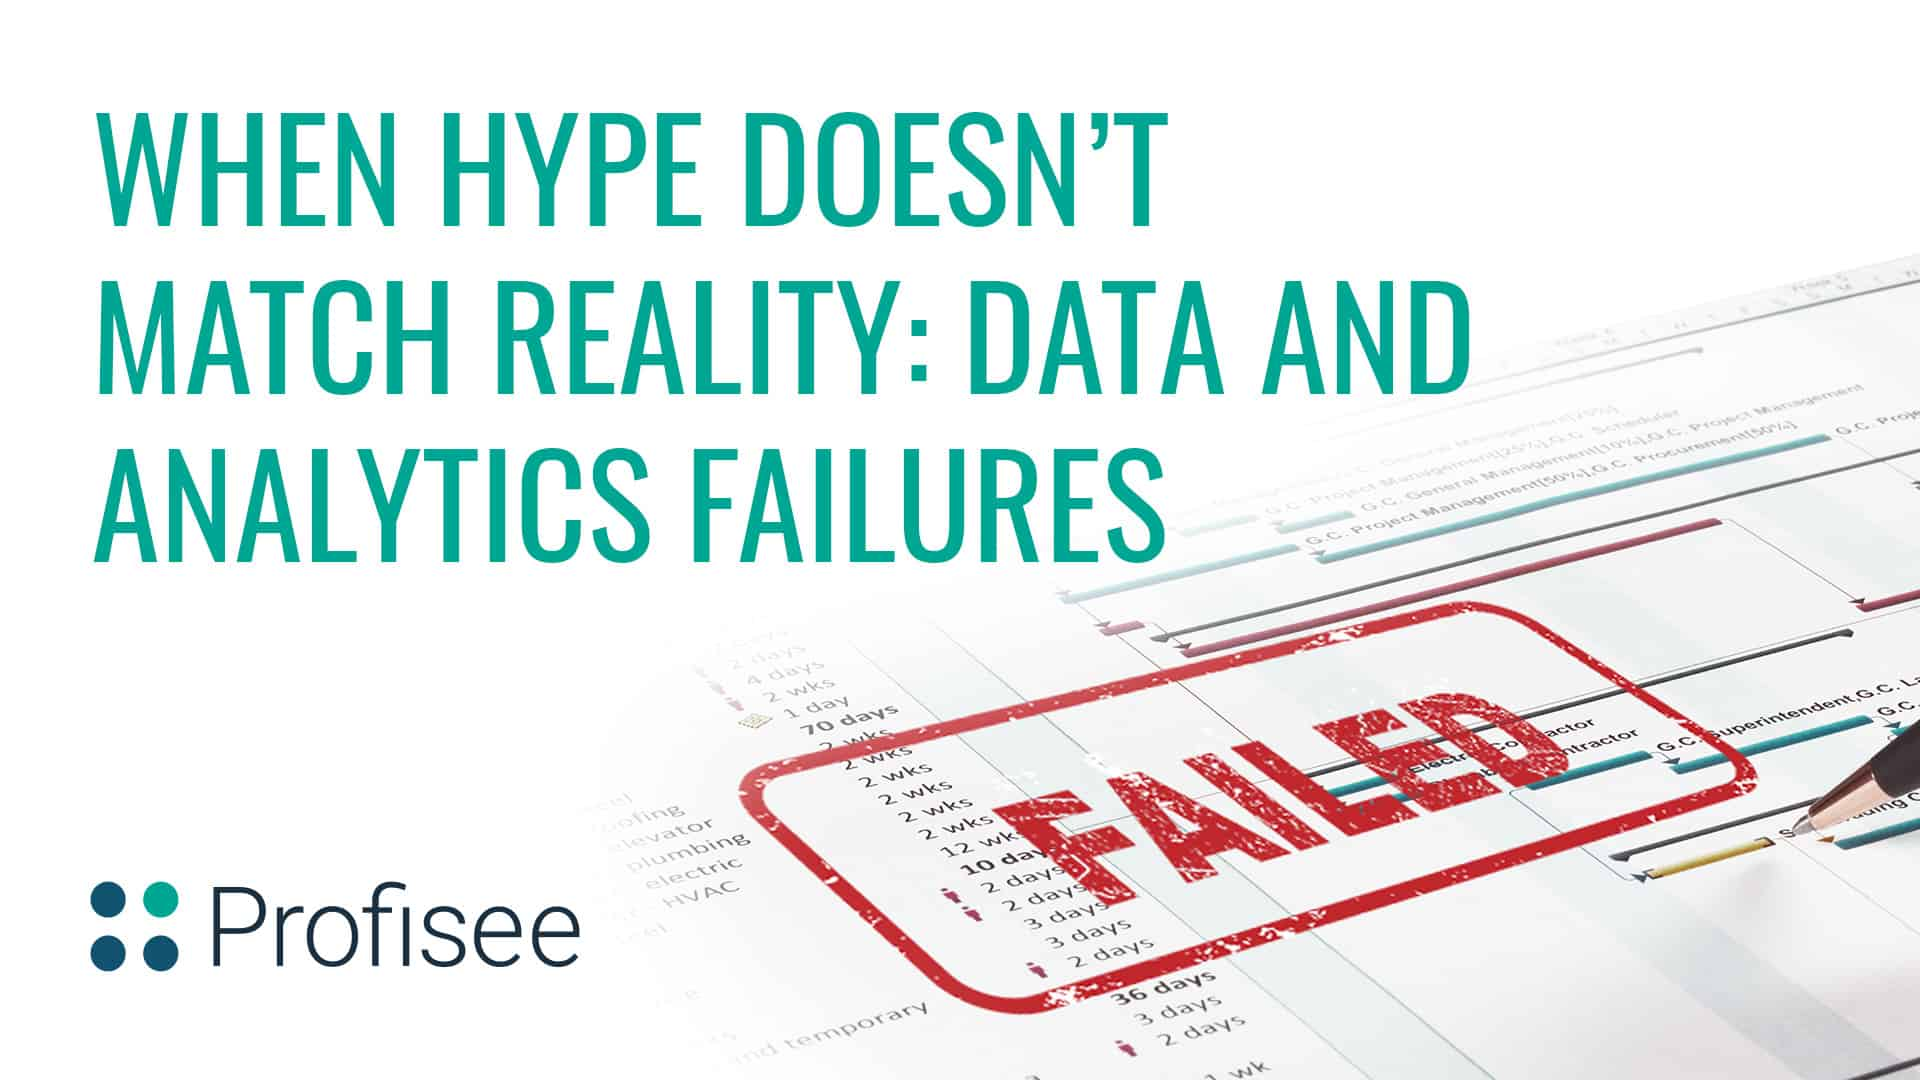 When Hype Doesn't Match Reality: Data and Analytics Failures